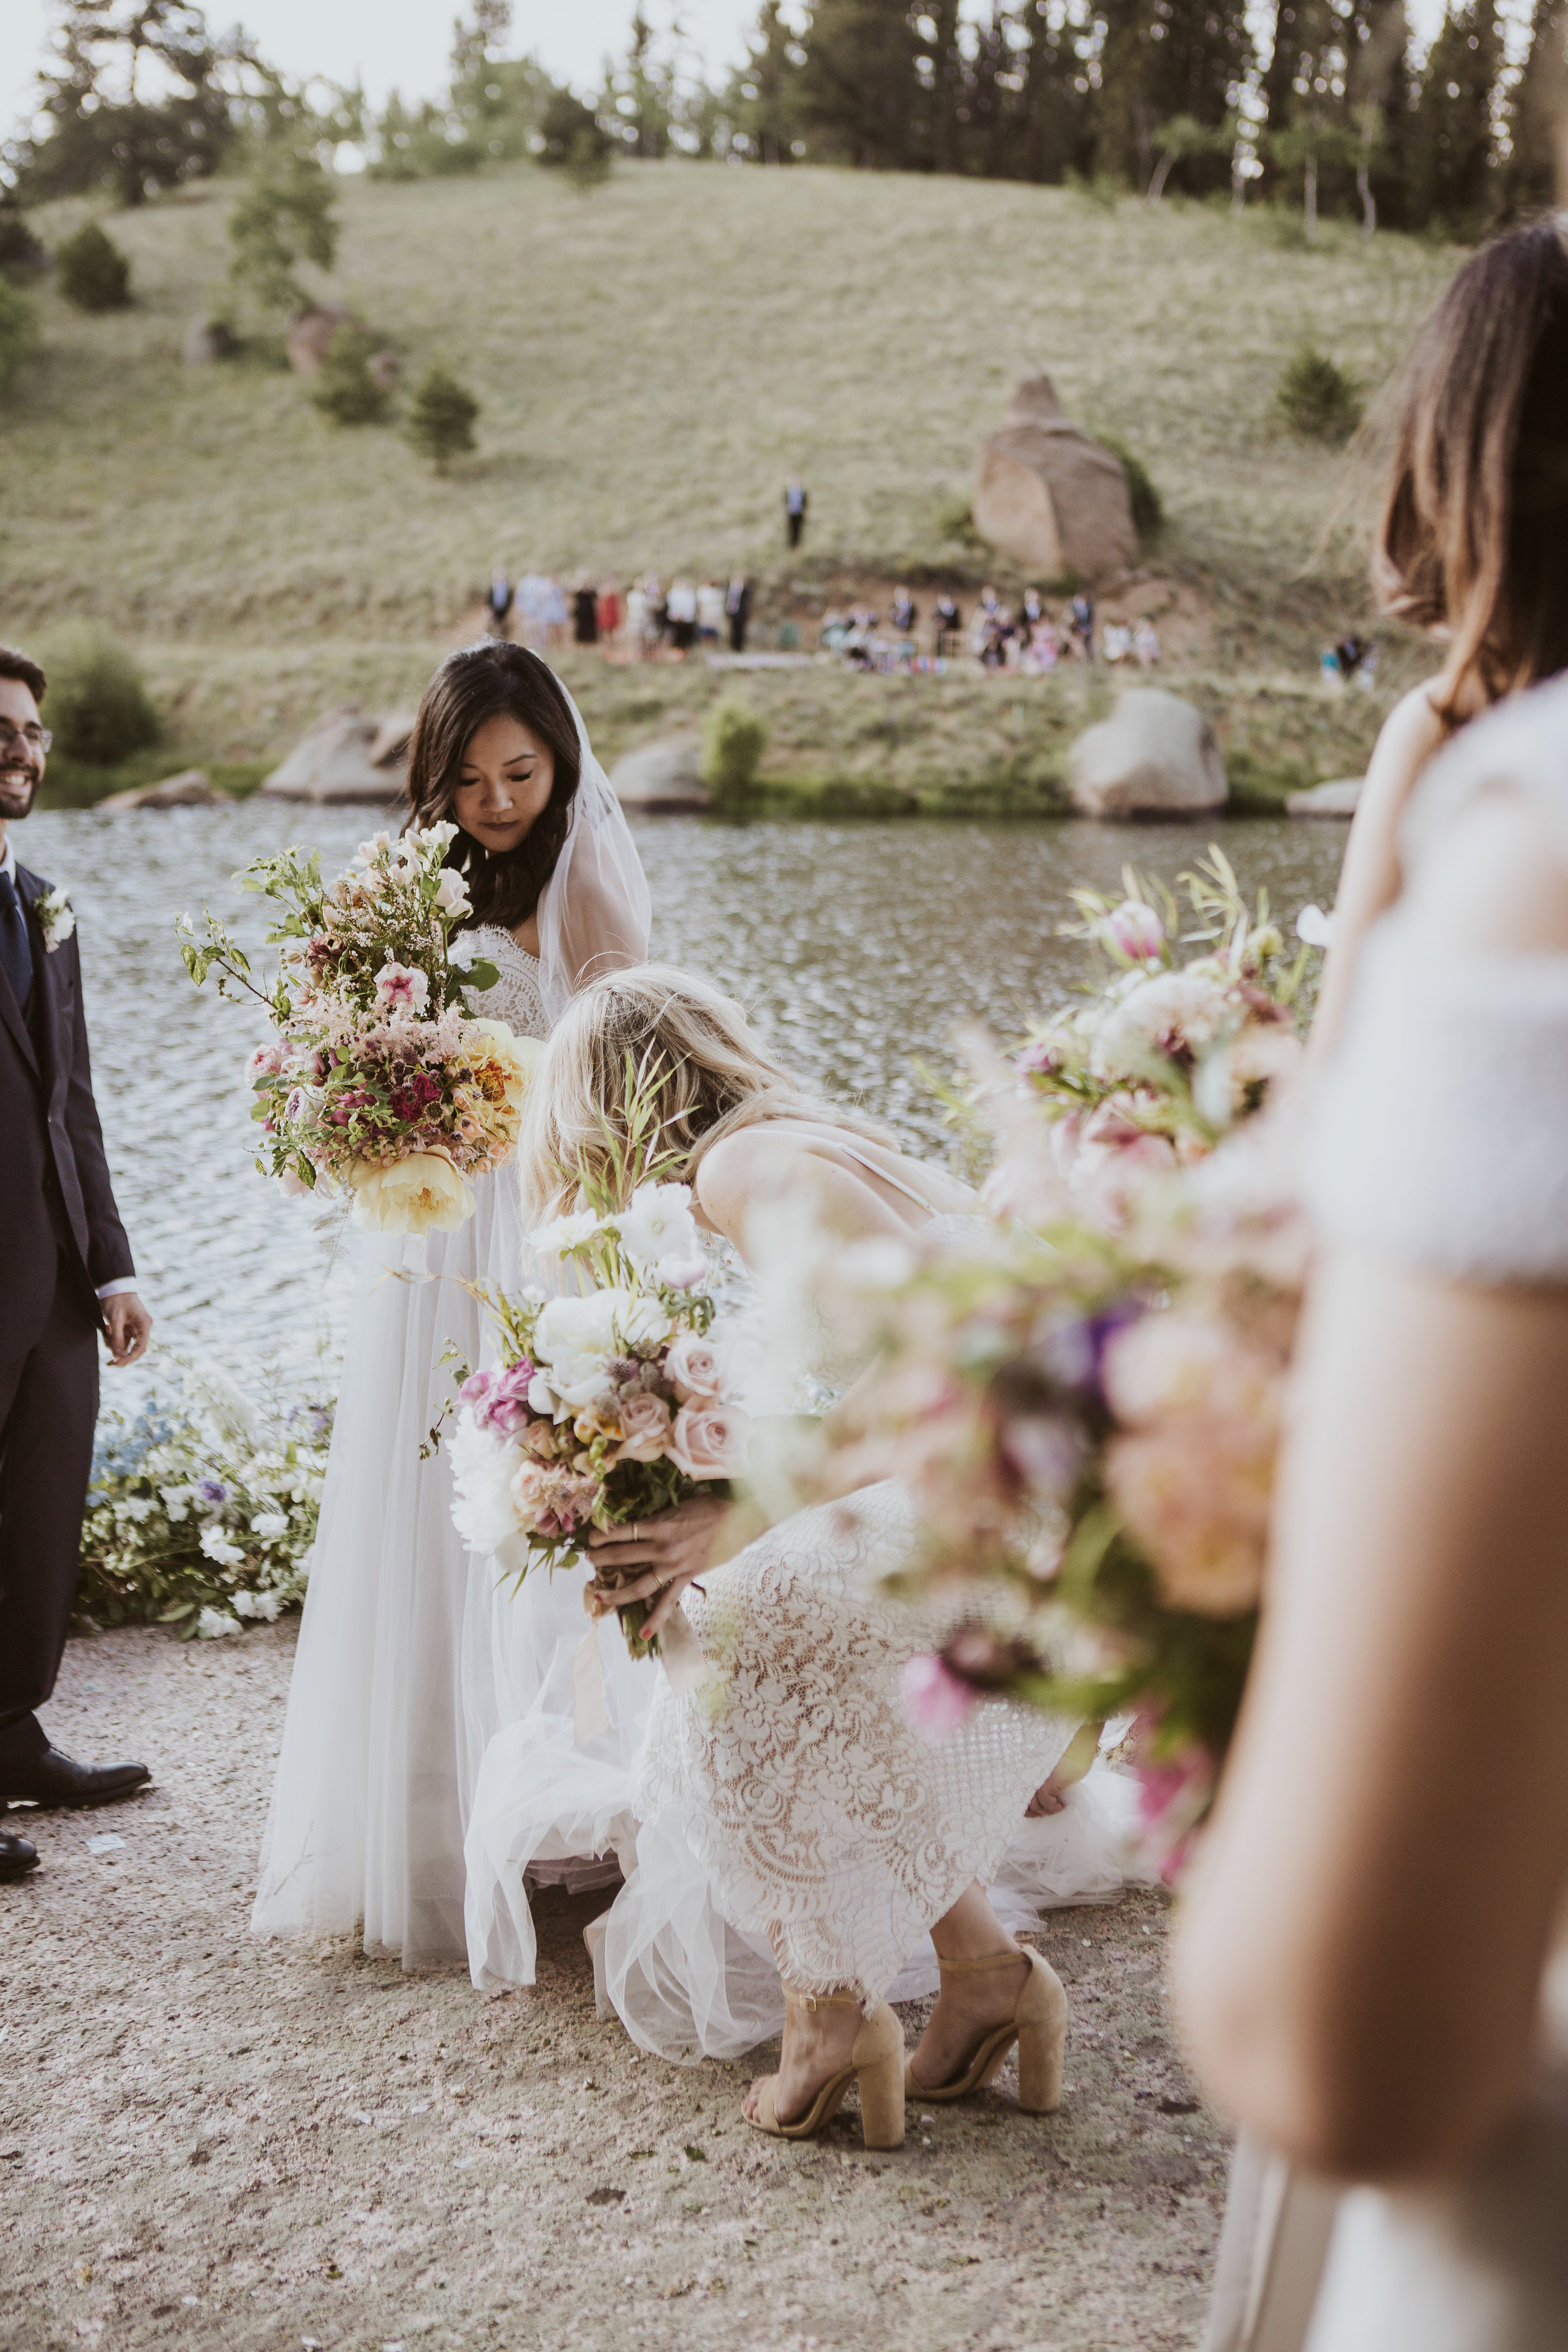 Wedding in the mountains, surrounded by water, wildflowers, and butterflies. Guests were seated across the river to take in the beautiful ceremony on the rock.